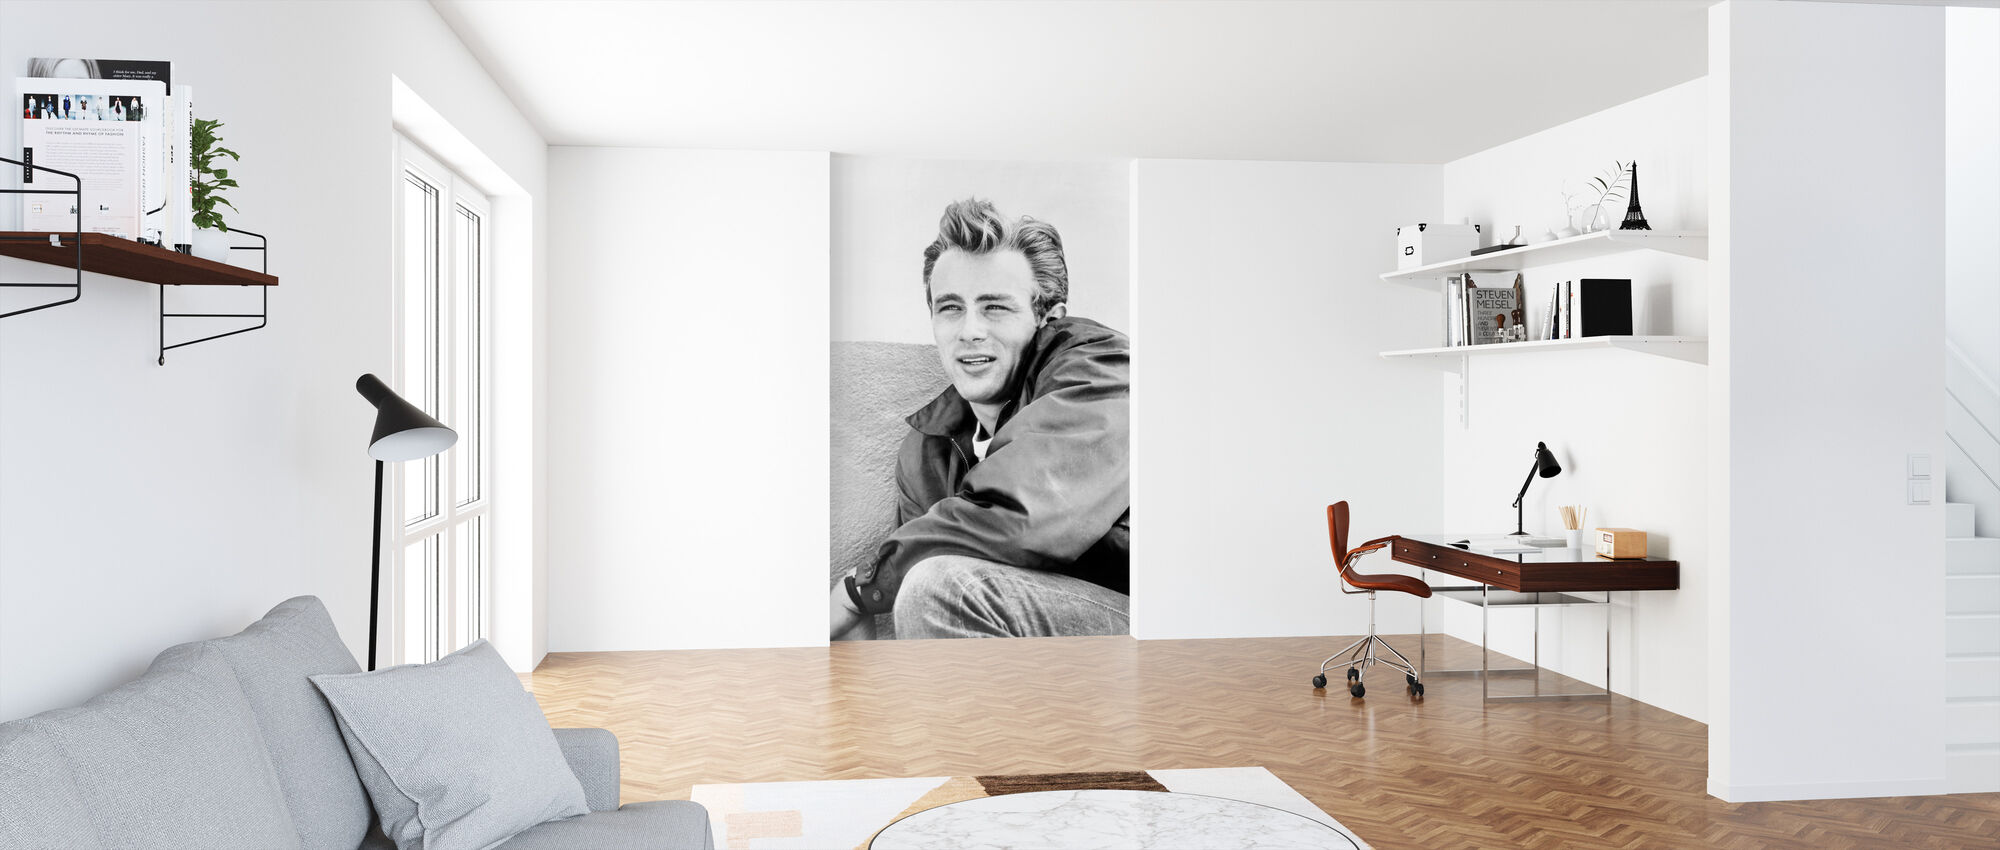 Rebel without a Cause 2 - Wallpaper - Office